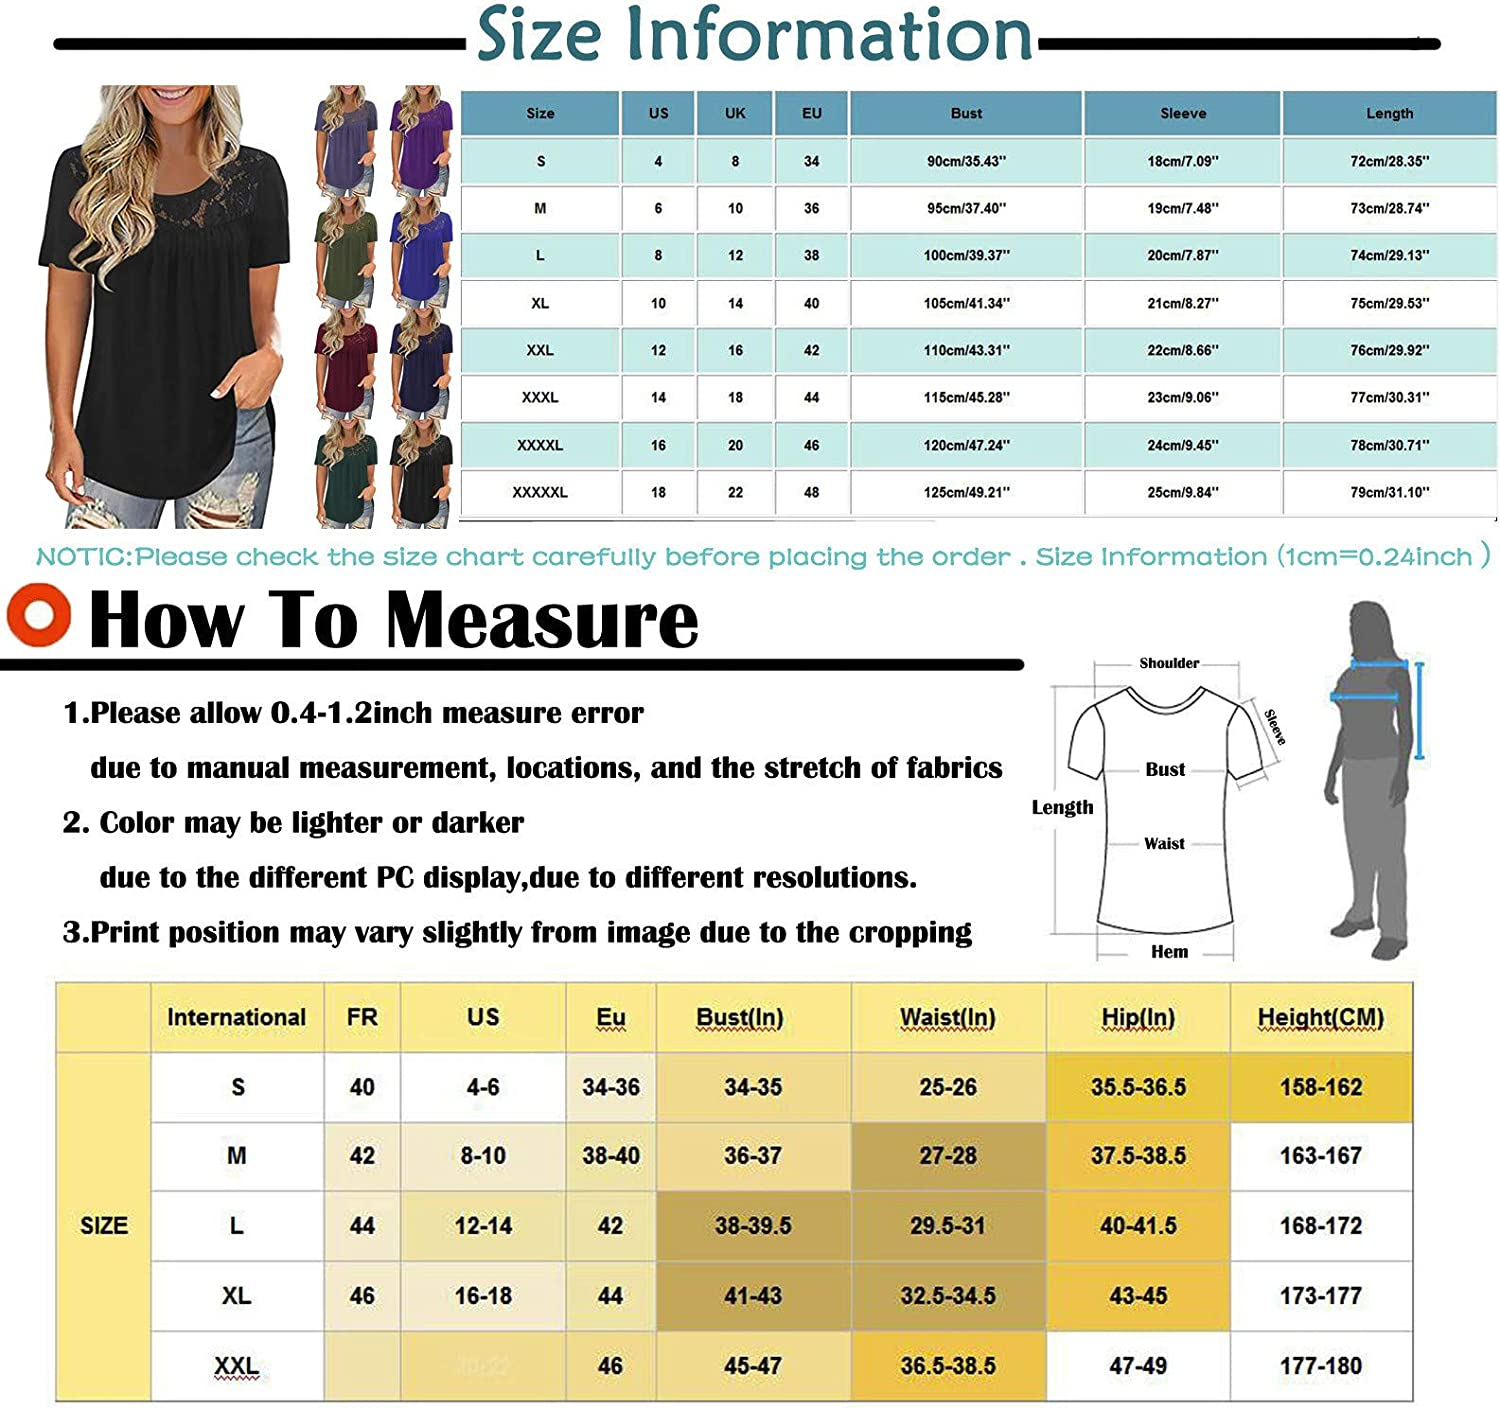 Aukbays Womens Summer Tops, Short Sleeve Batwing Sleeves for Women Casual Basic Comfy Tee Shirt Round Neck Tunic Tops